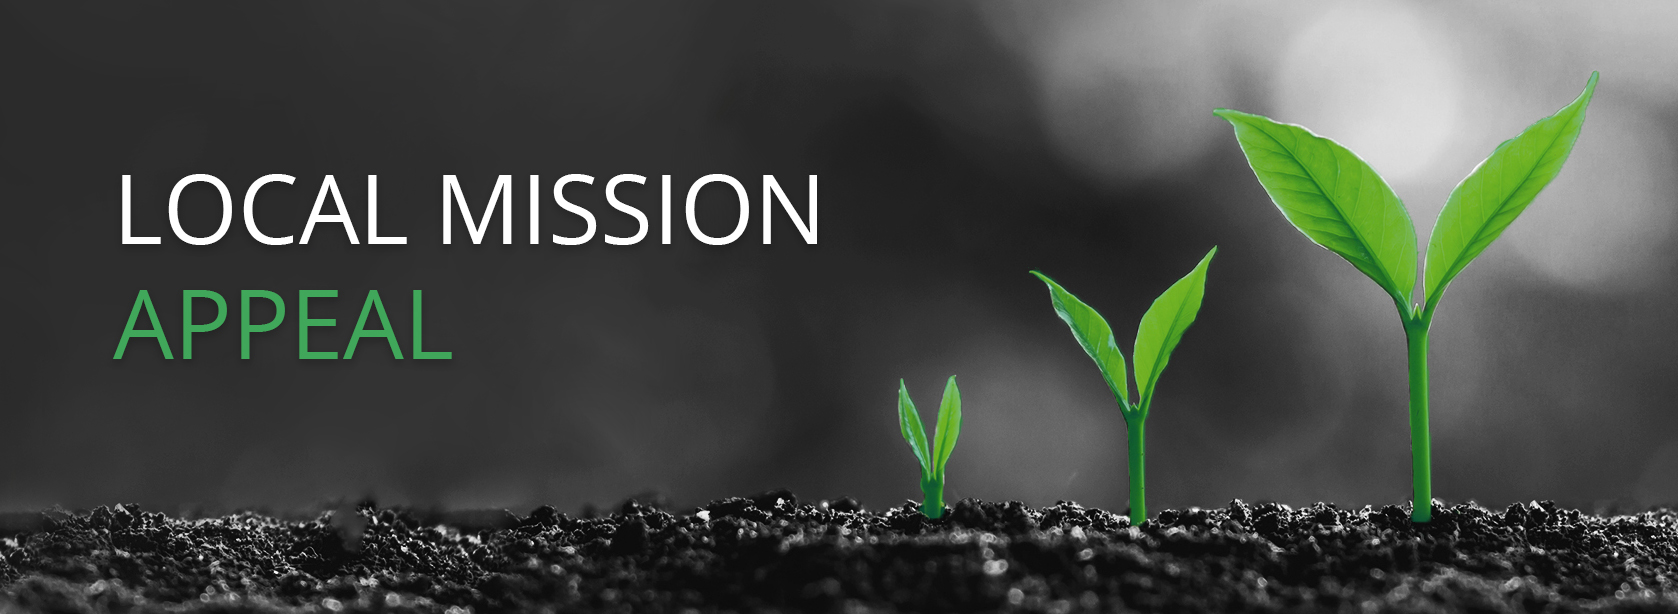 local mission appeal header-Recovered page